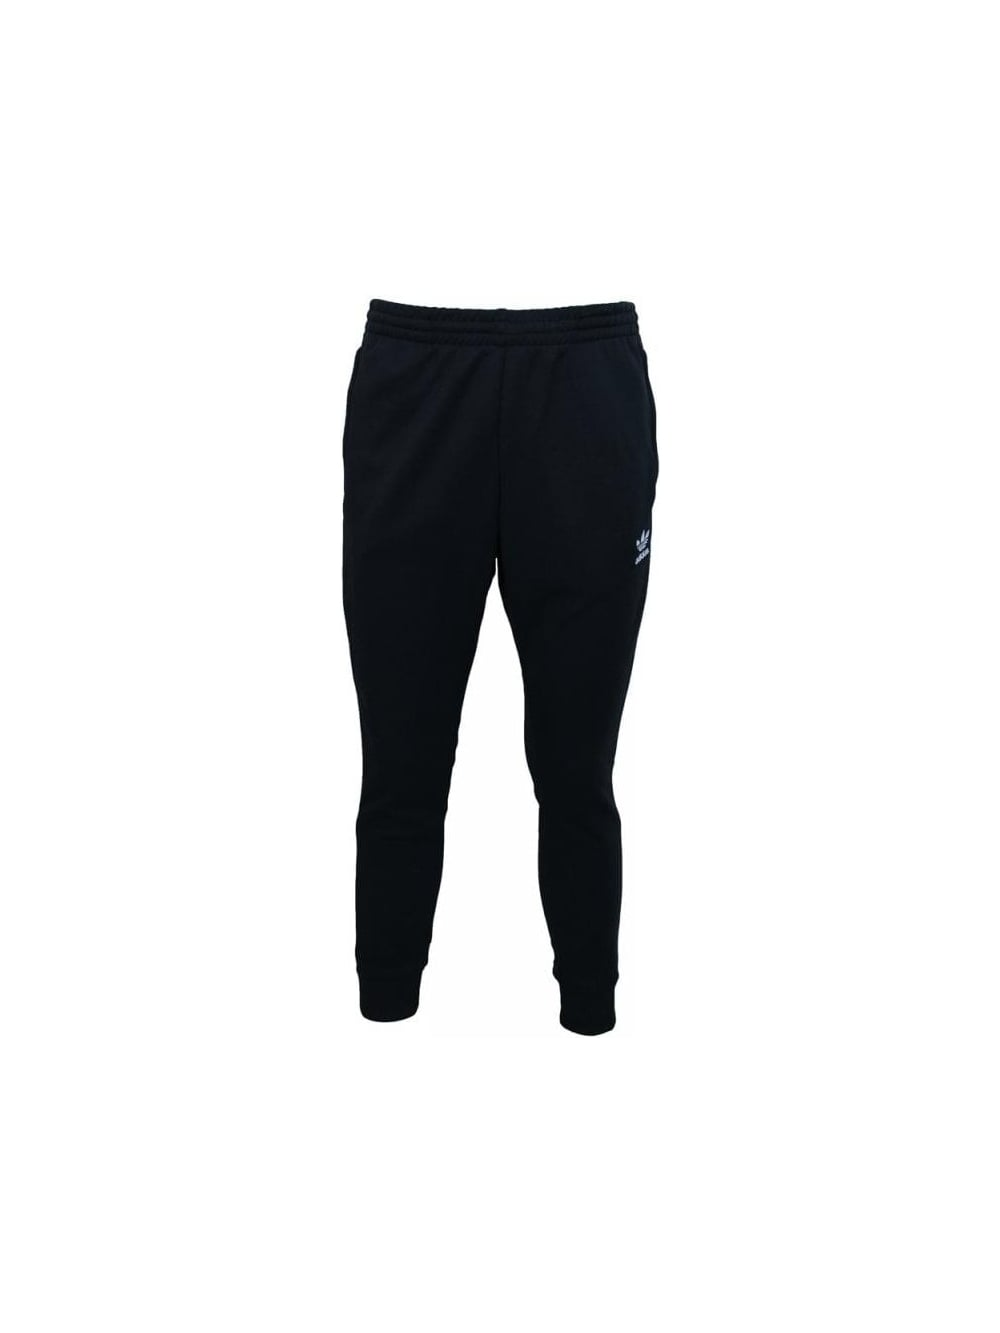 69a16603c5bc Adidas Superstar Cuffed Track Pants in Black - Northern Threads